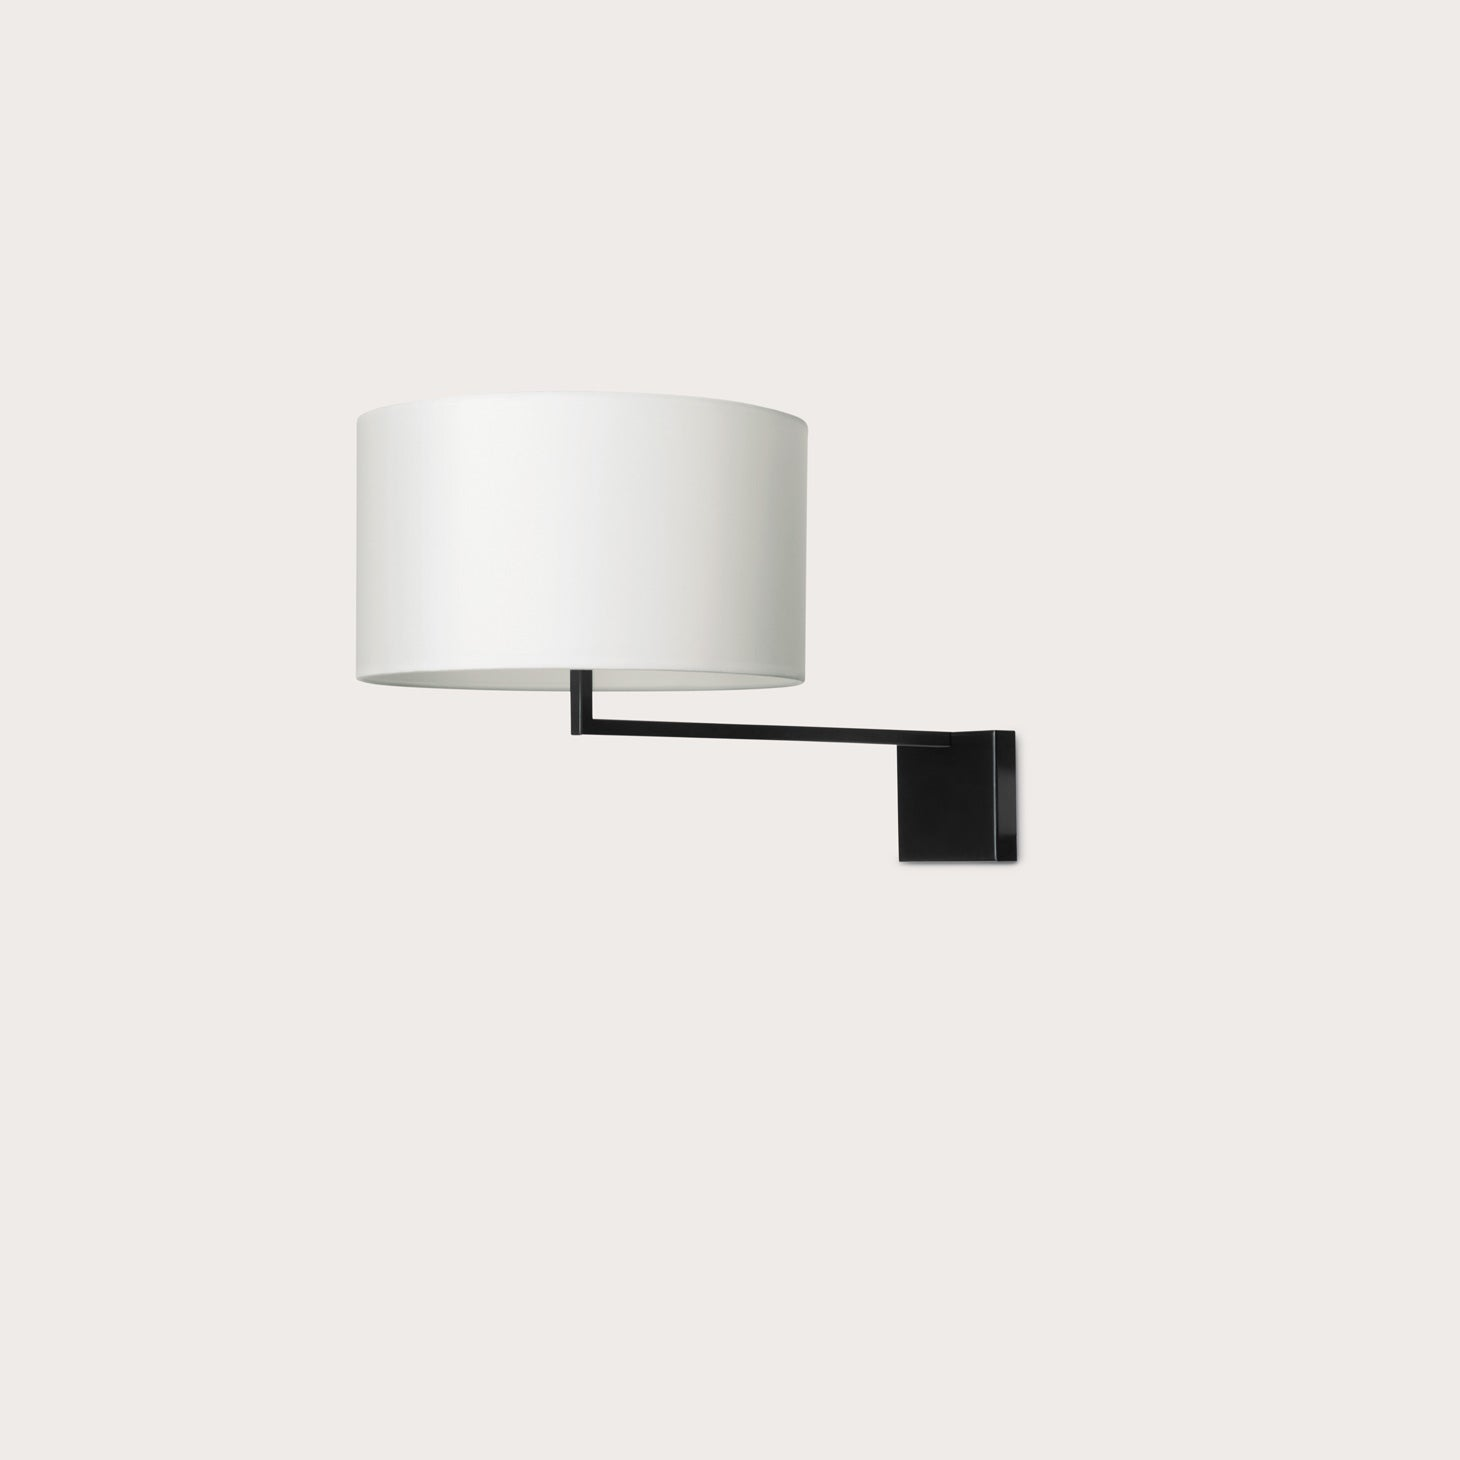 Wall Noon Lighting El Schmid Designer Furniture Sku: 006-160-10049